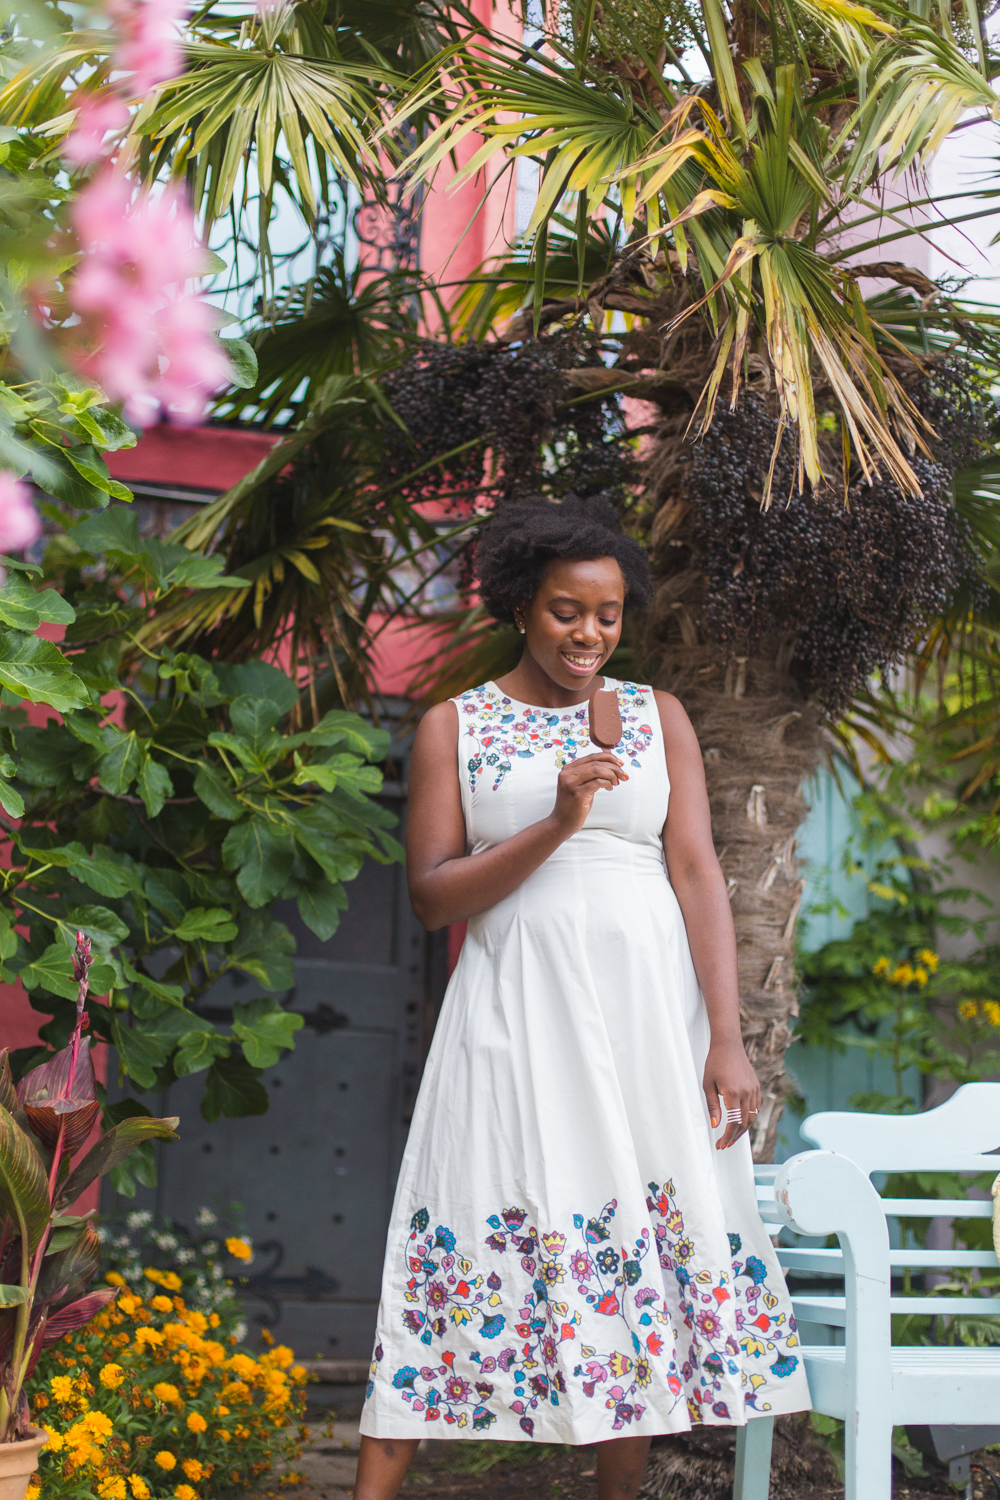 Boden ICONS Joan dress - Excited for Wimbledon? I'm sharing the perfect dessert by Haagen Dazs, to help get you in the mood for all that tennis.